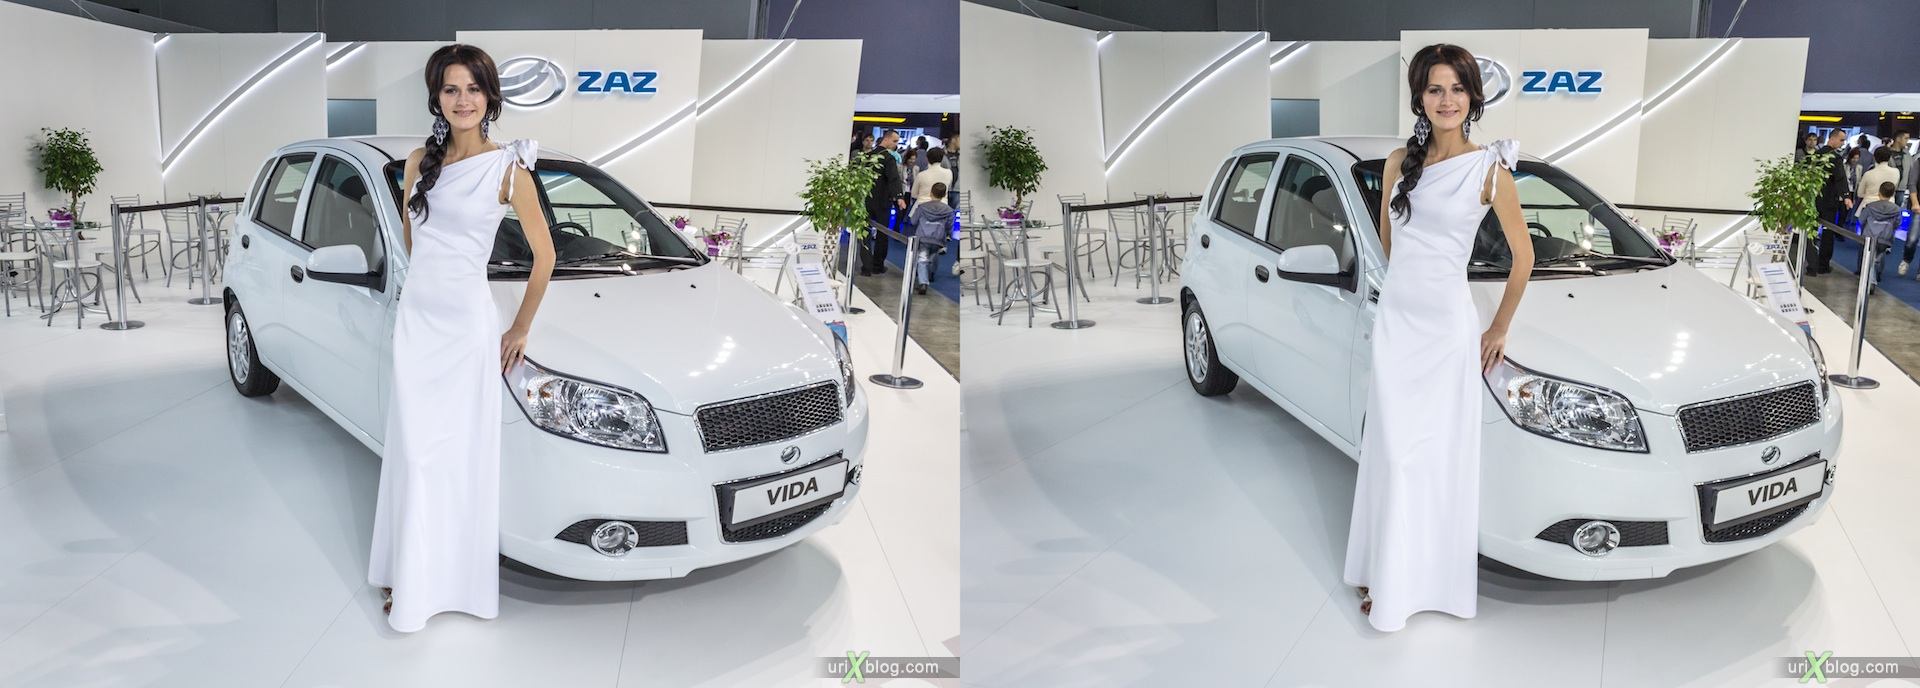 2012, ZAZ VIDA, girl, model, Moscow International Automobile Salon, auto show, 3D, stereo pair, cross-eyed, crossview